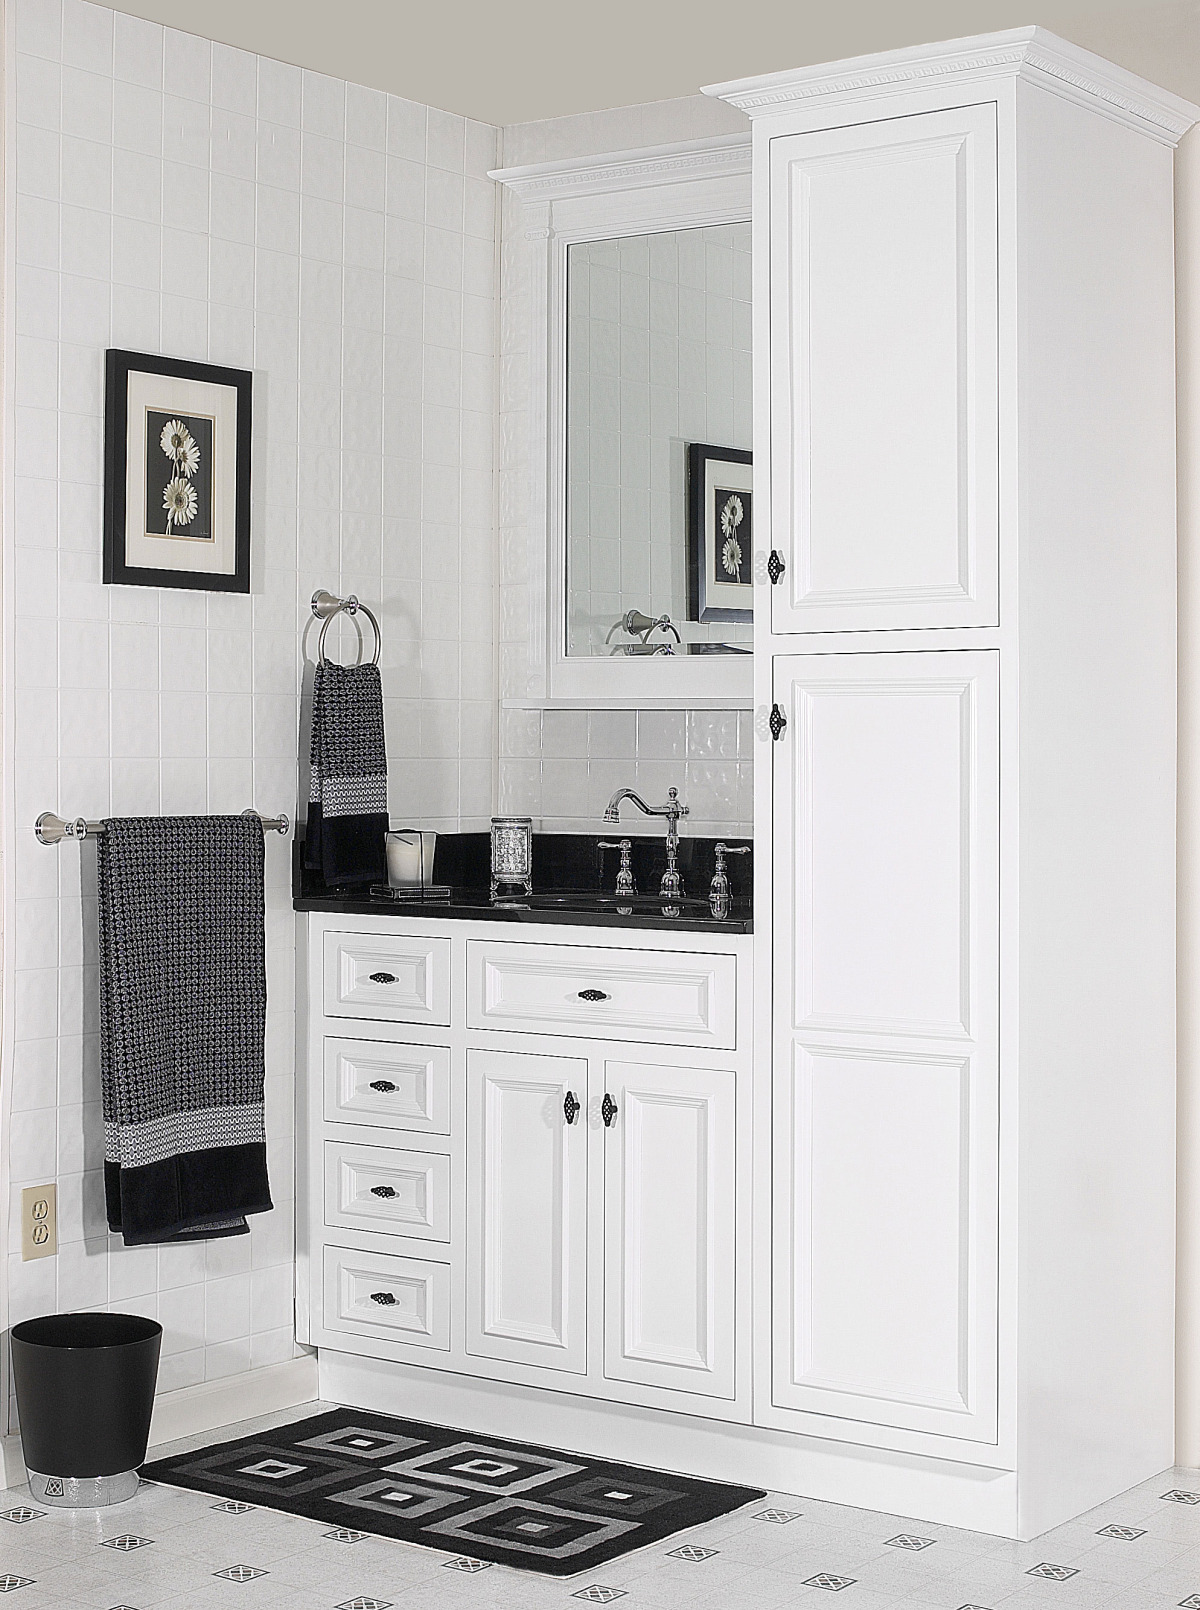 Bathroom vanity premium kitchen cabinets Bathroom storage cabinets